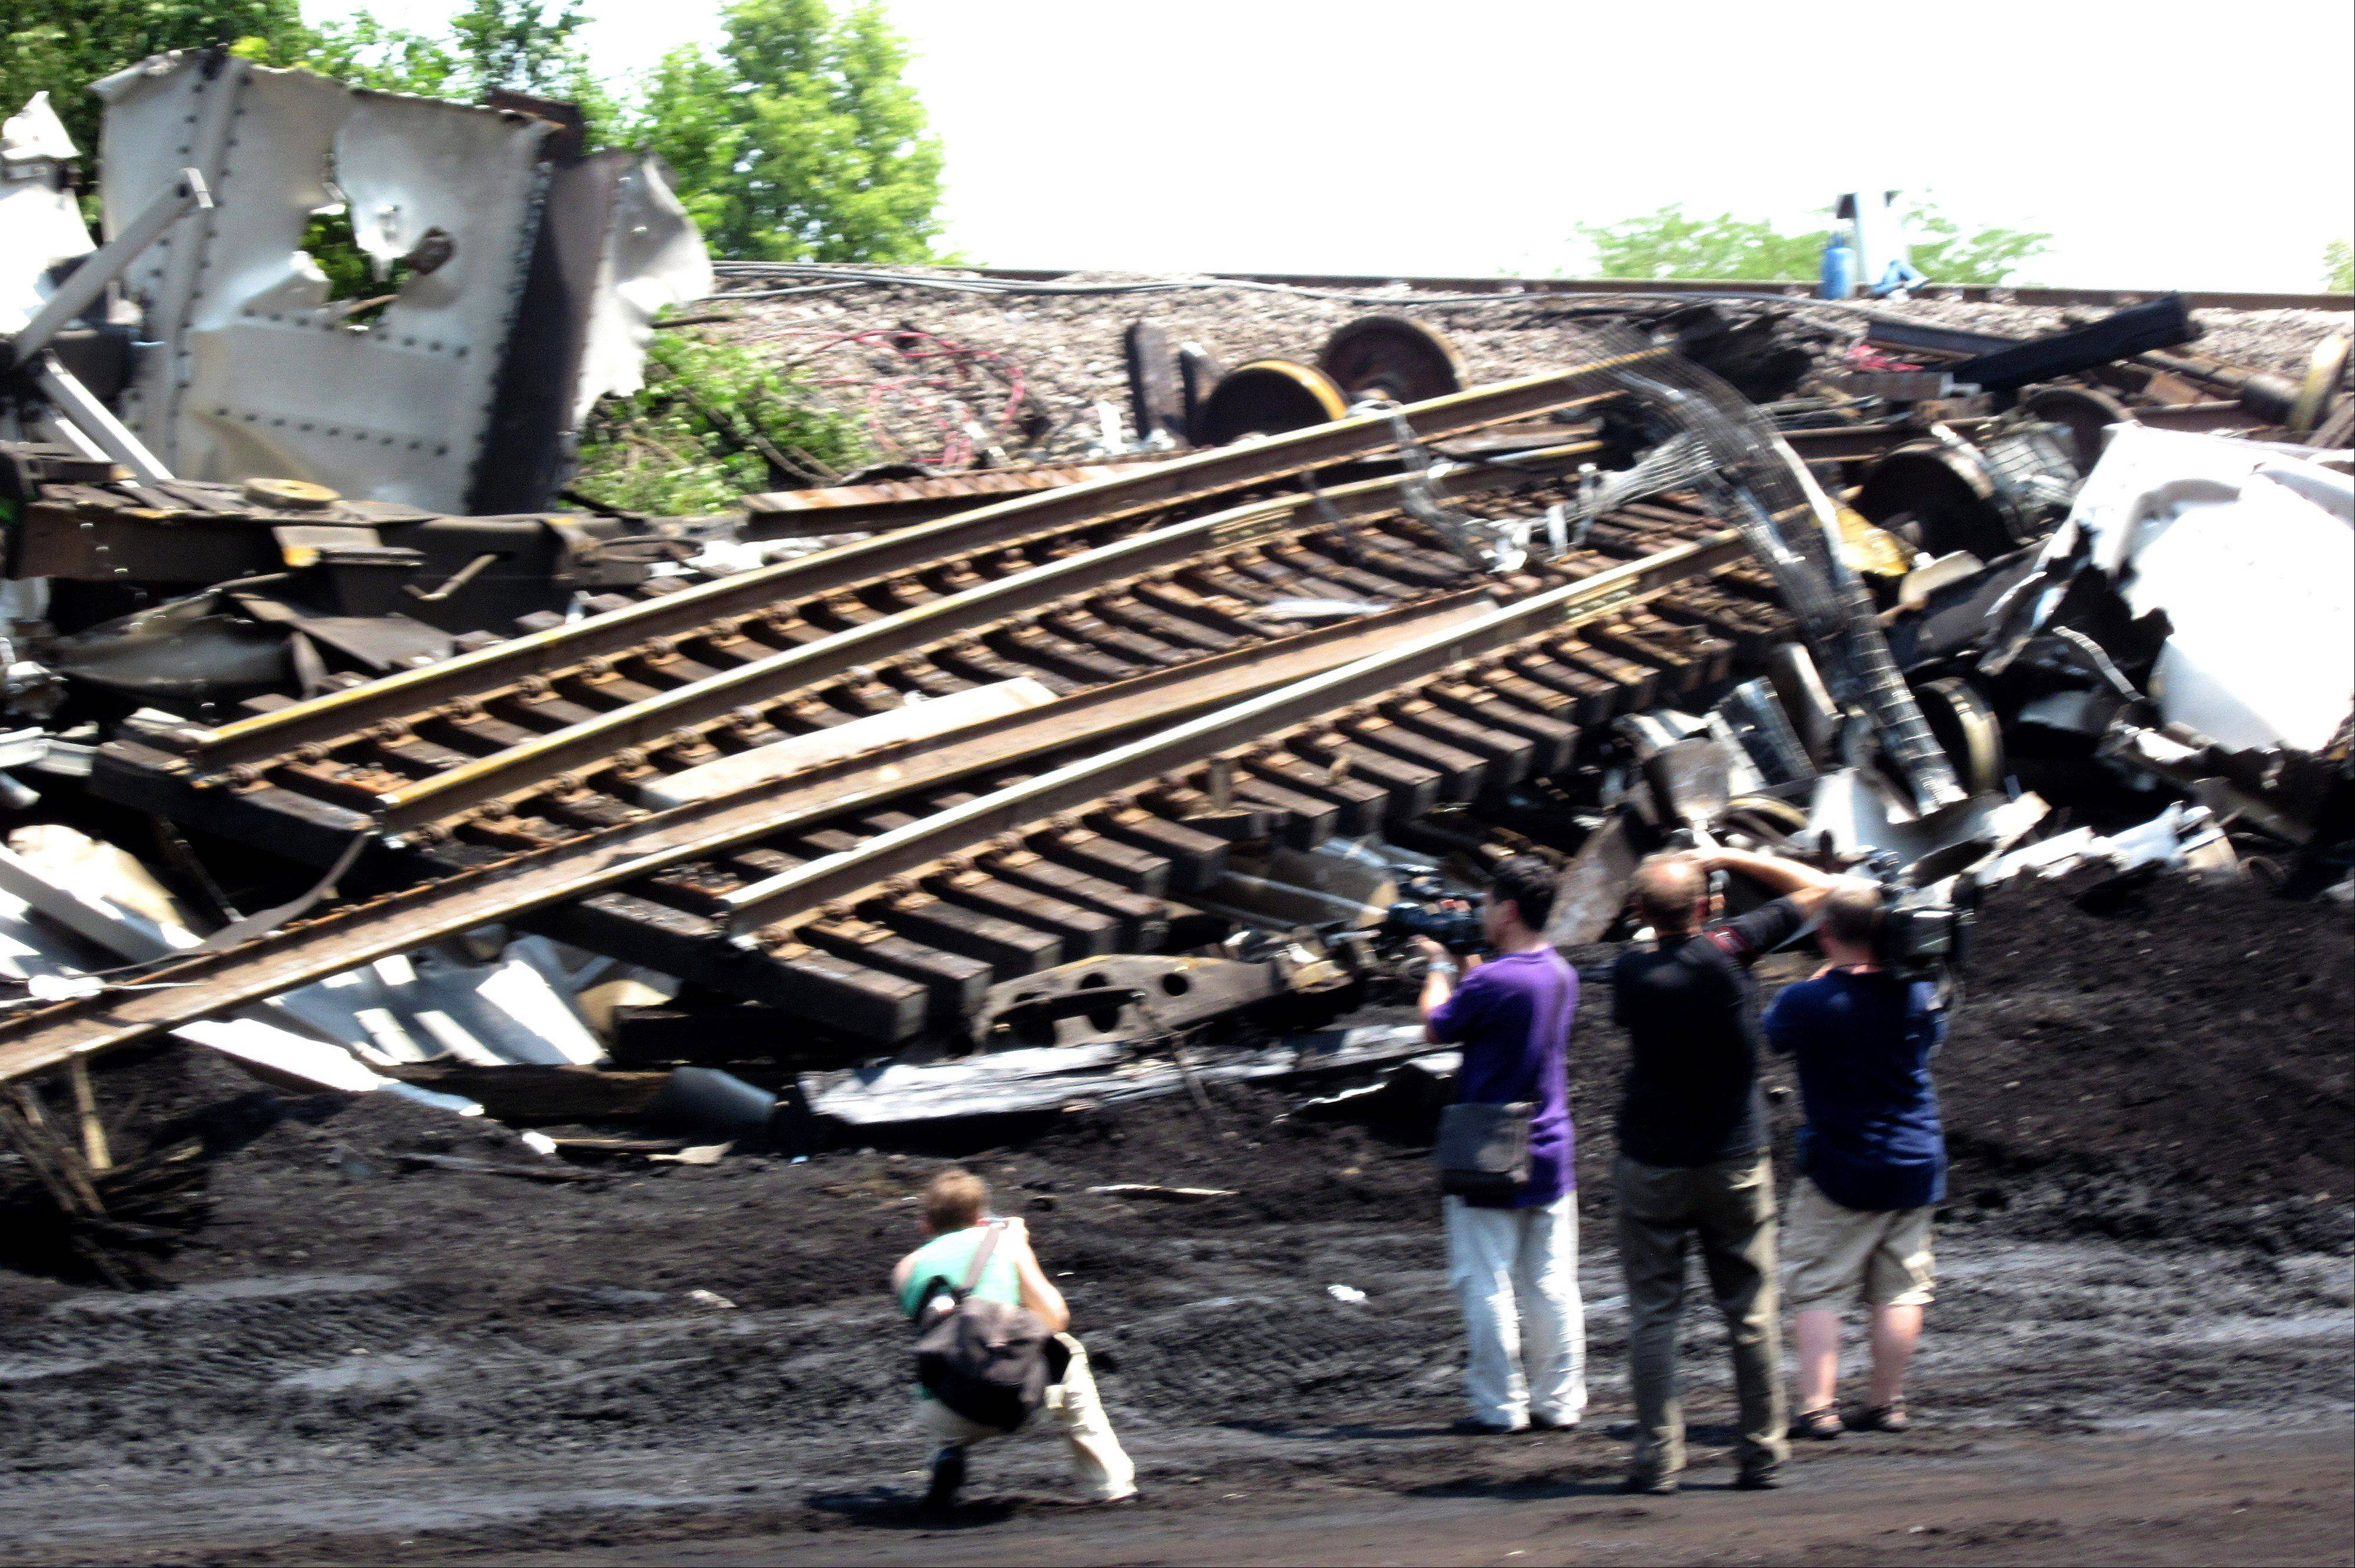 Members of the media record the scene on Friday in the wake of a Wednesday train derailment in Glenview.